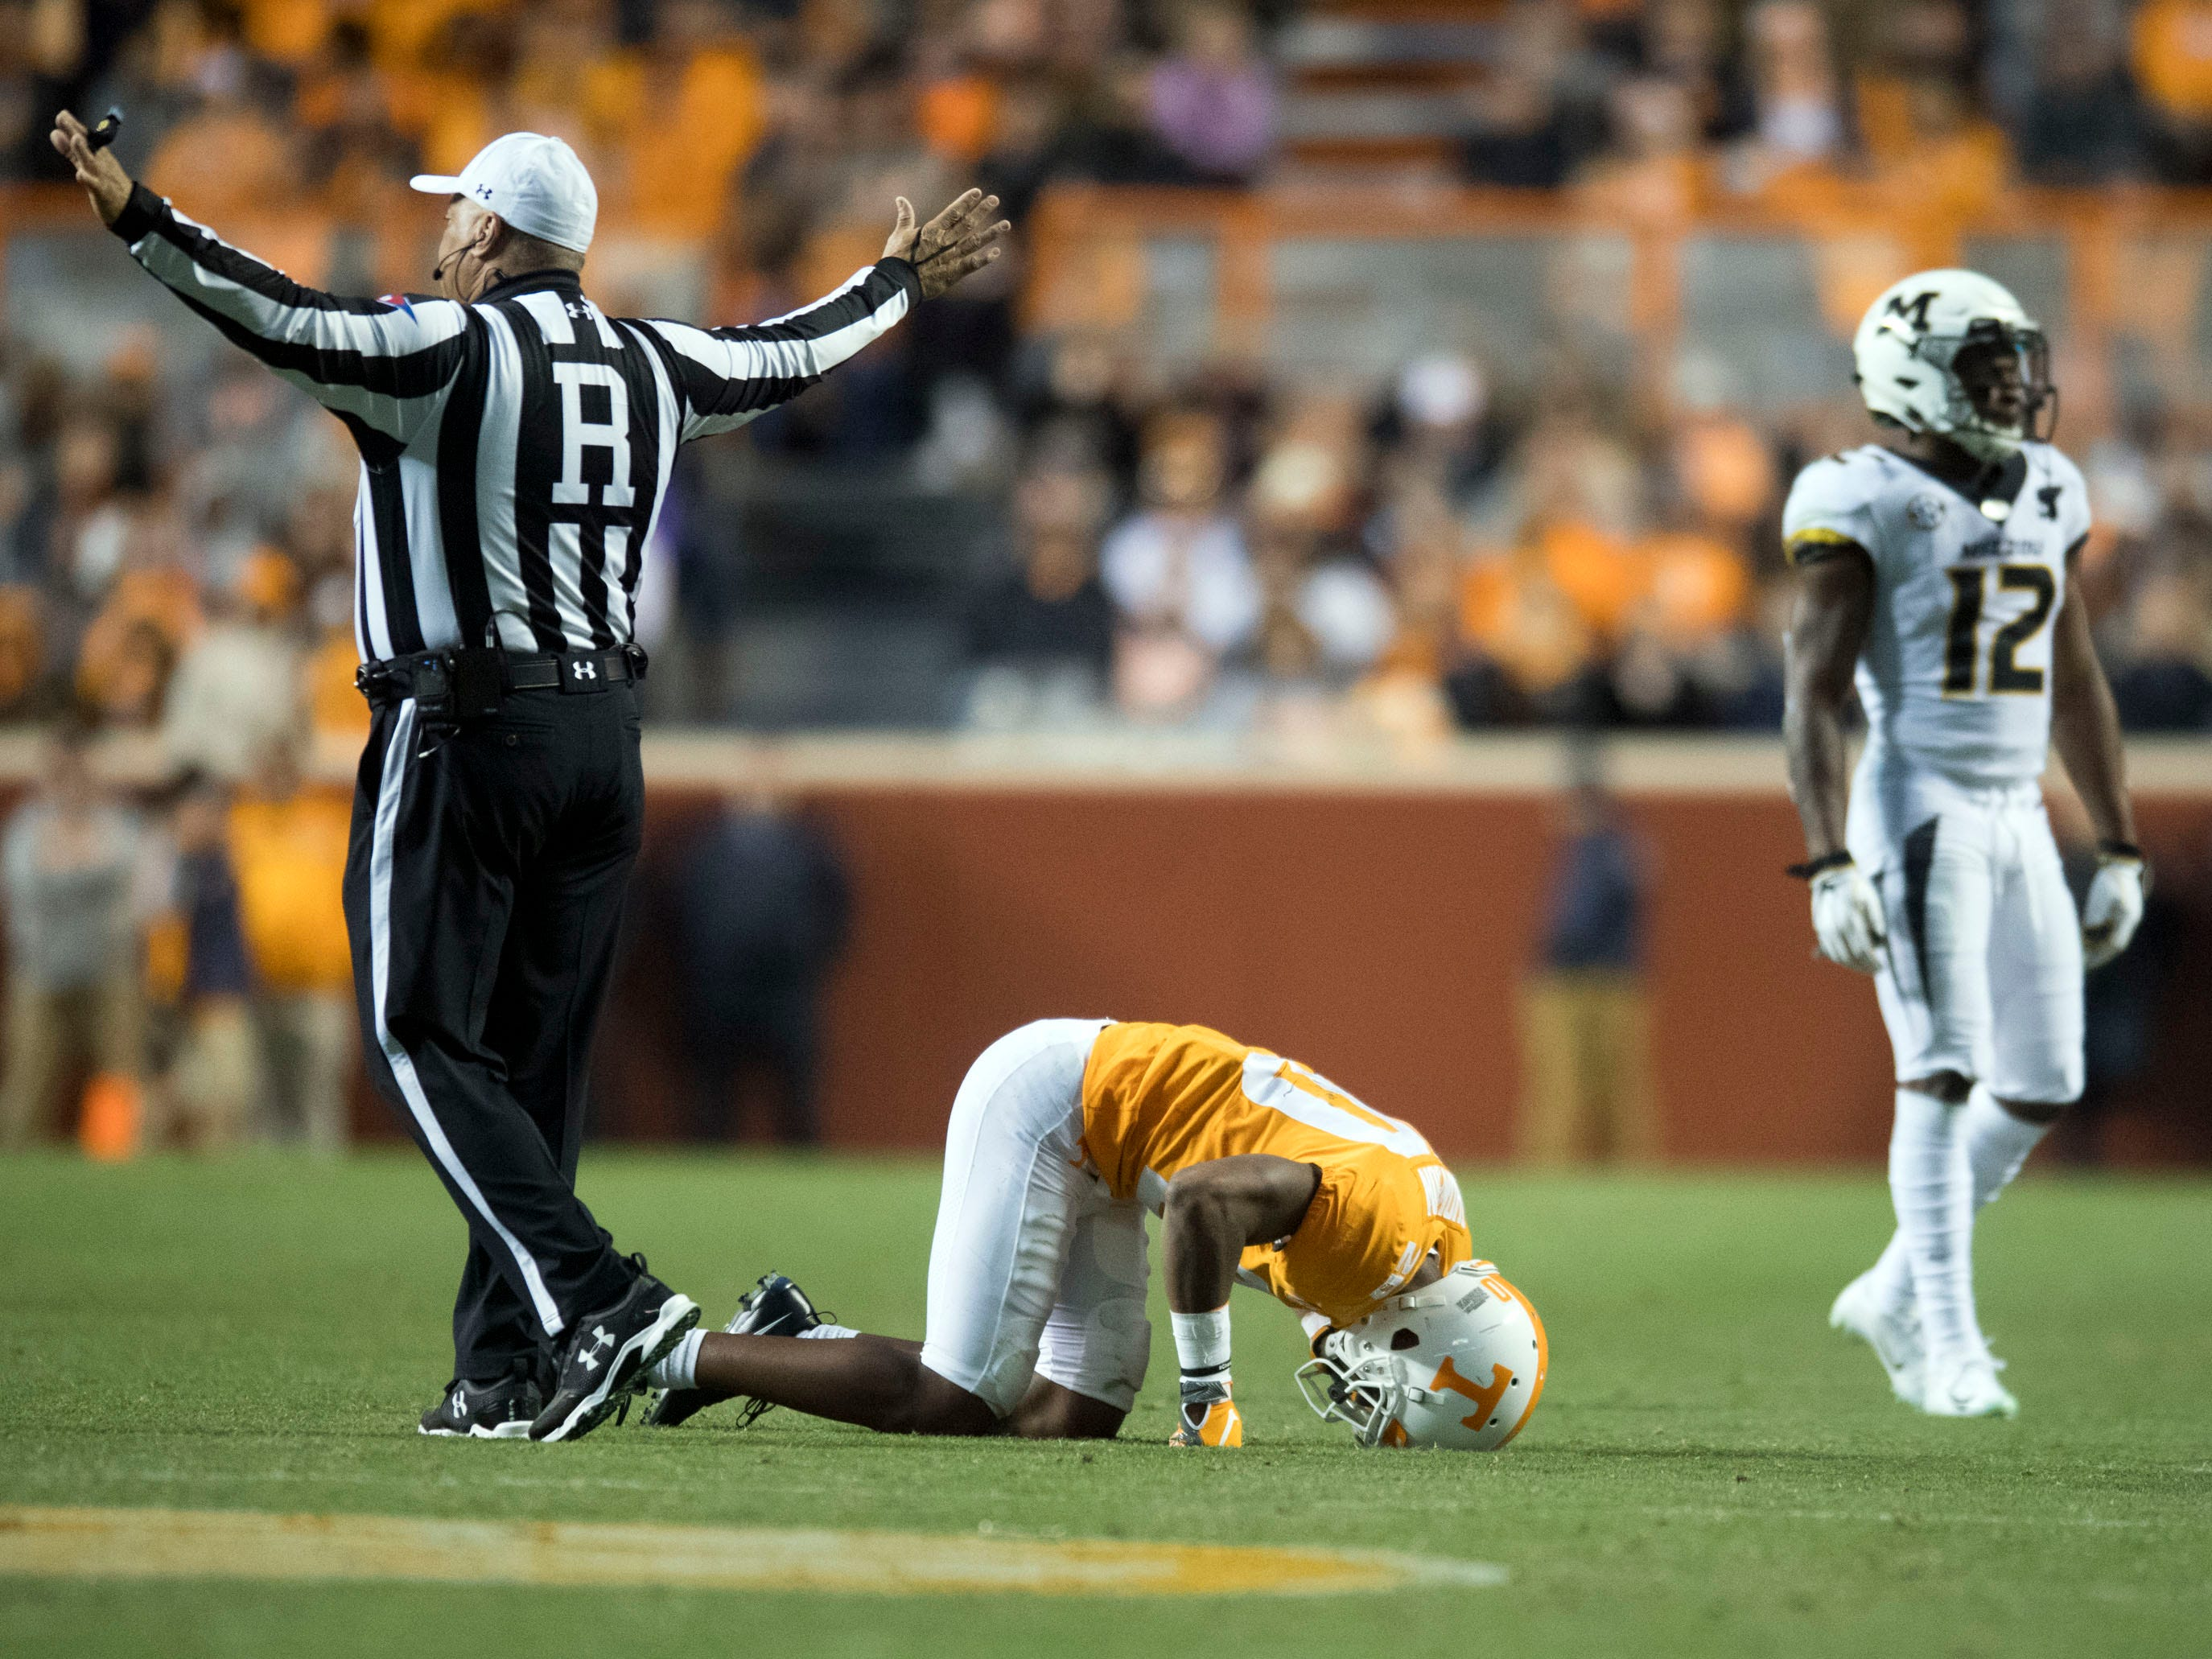 Tennessee defensive back Bryce Thompson (20) stays down after he is shaken up on a play during game against Missouri on Saturday, November 17, 2018.